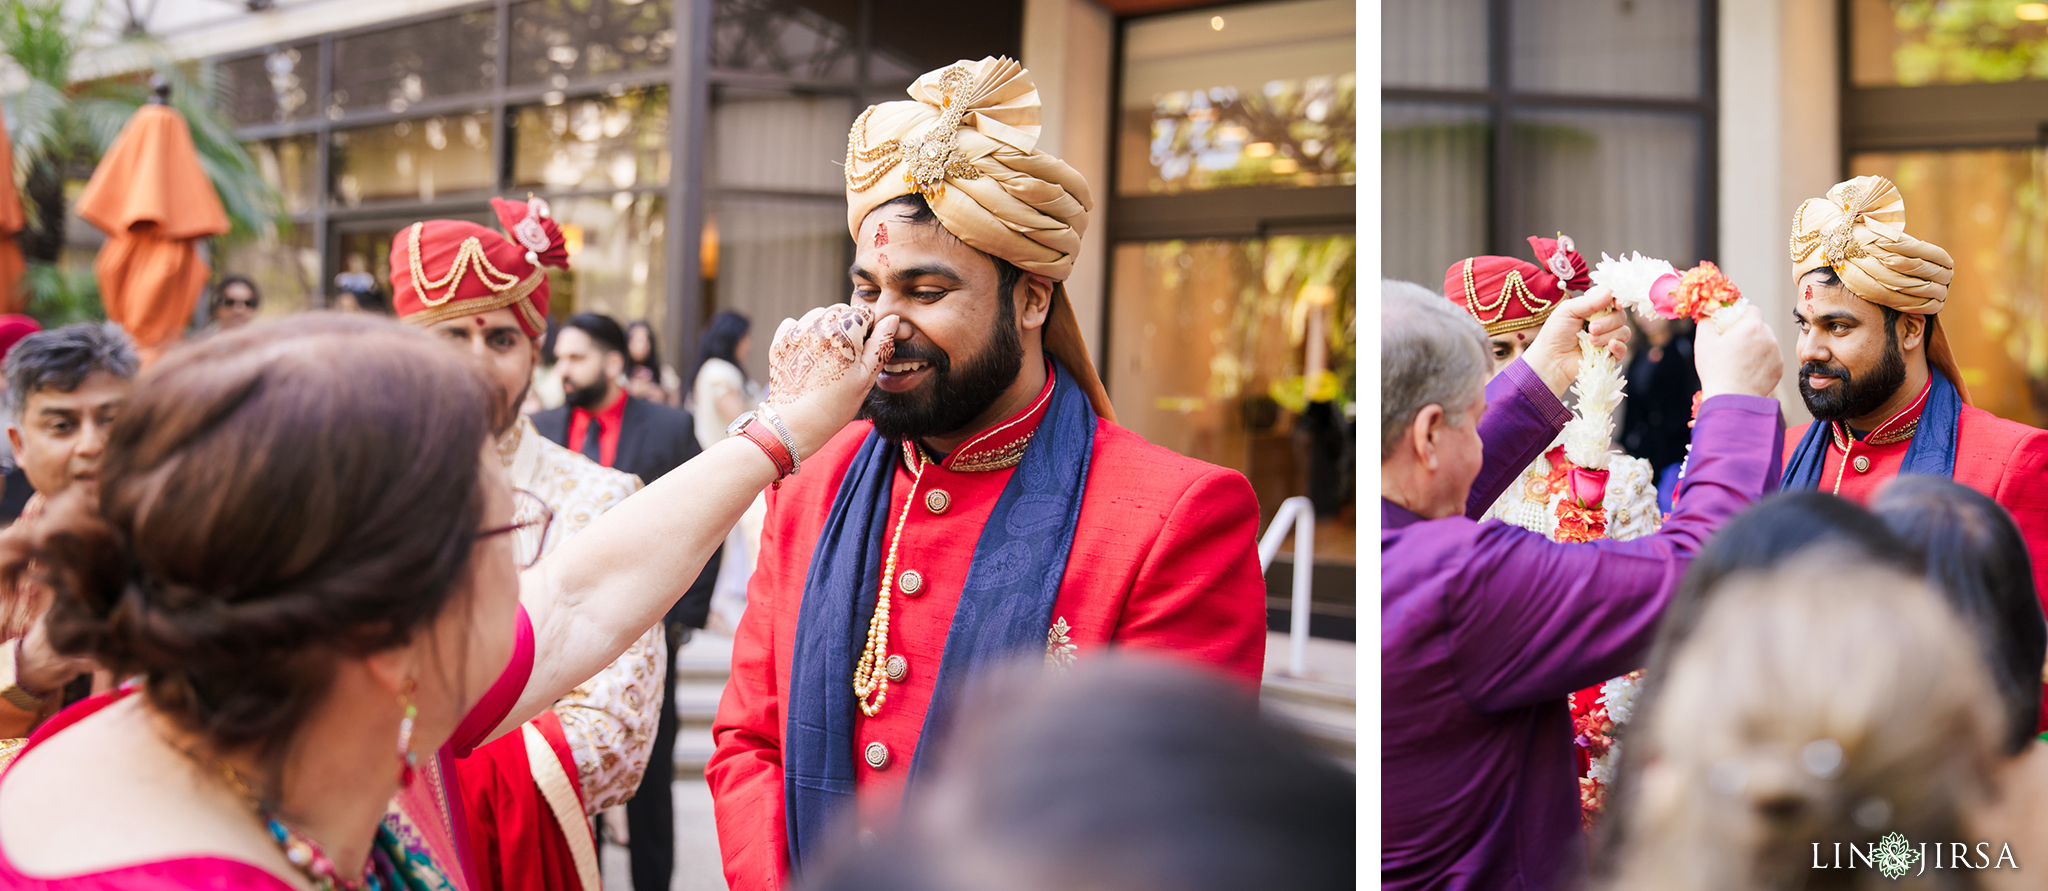 15 Hotel Irvine Multicultural Indian Wedding Photography